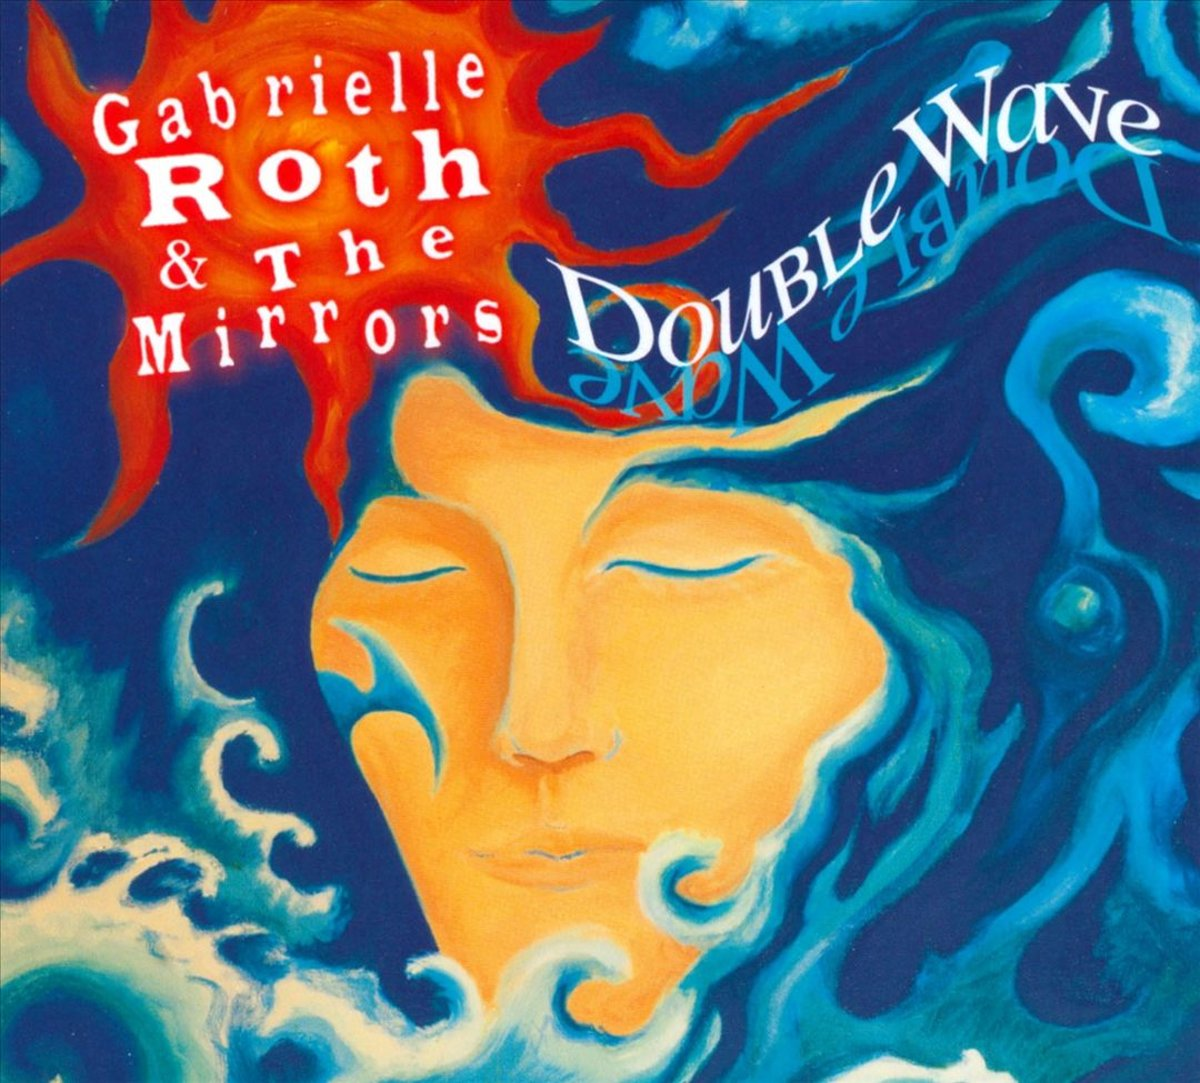 Габриэл Рот,The Mirrors Gabrielle Roth & The Mirrors. Double Wave